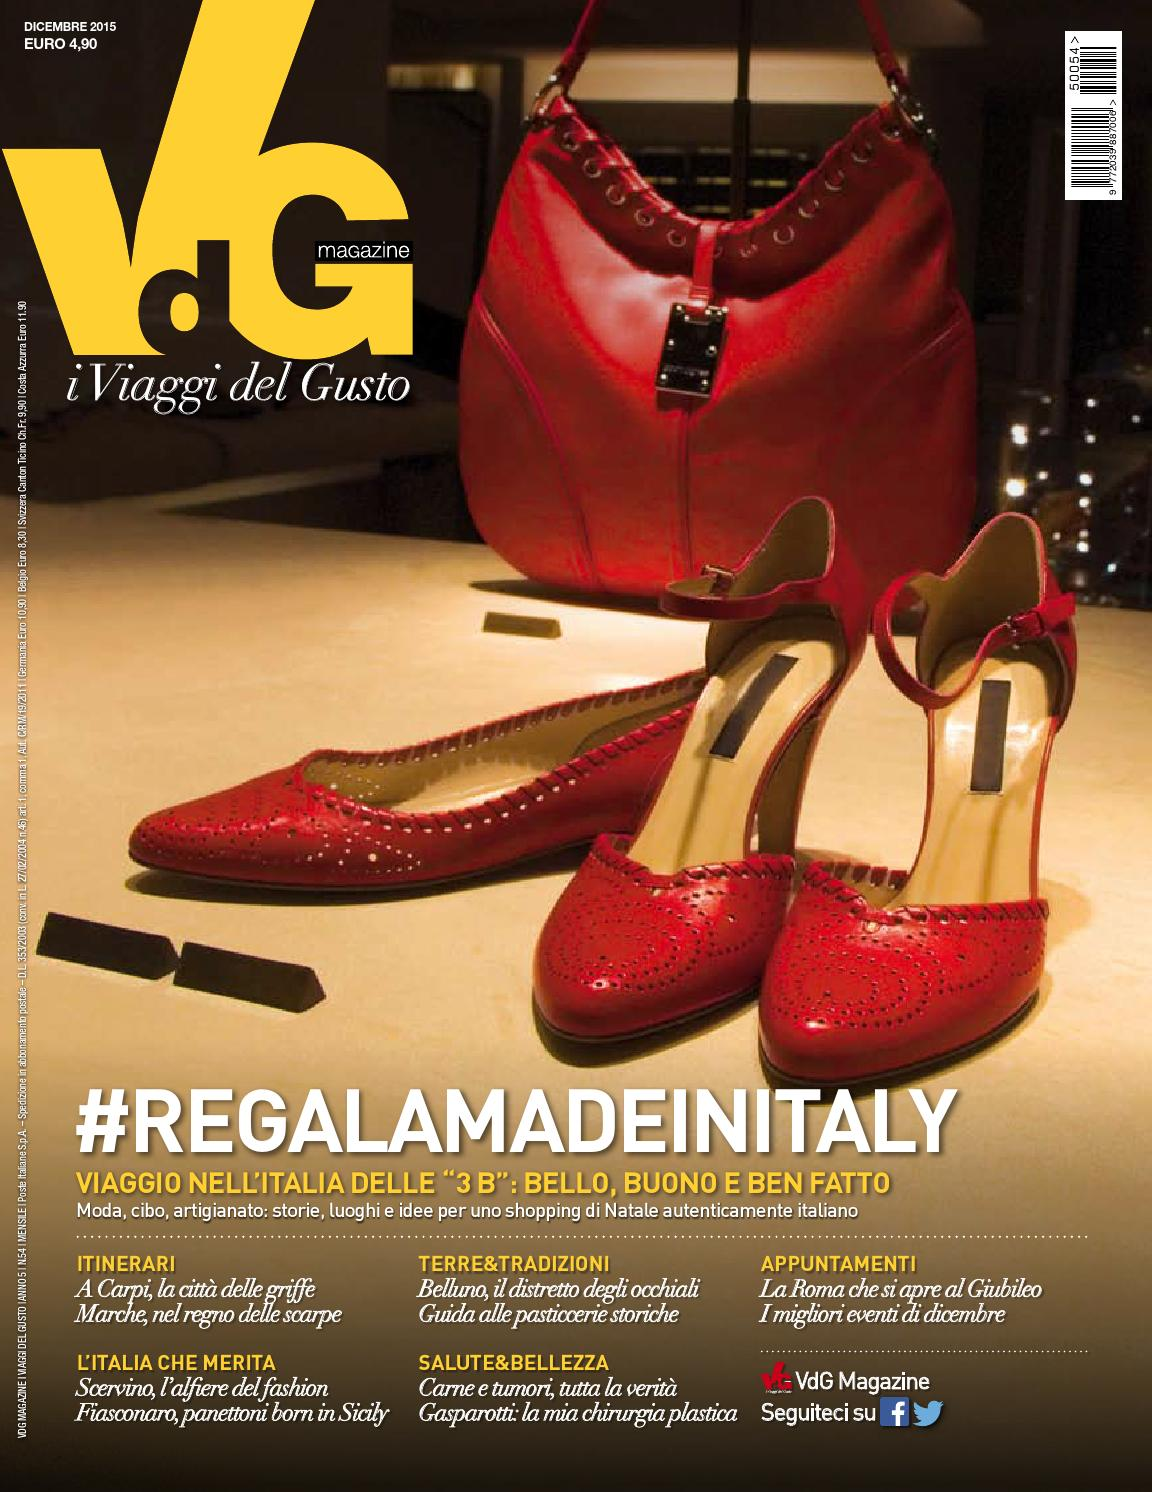 VdG dicembre 2015 by vdgmagazine - issuu cee0d421b6b